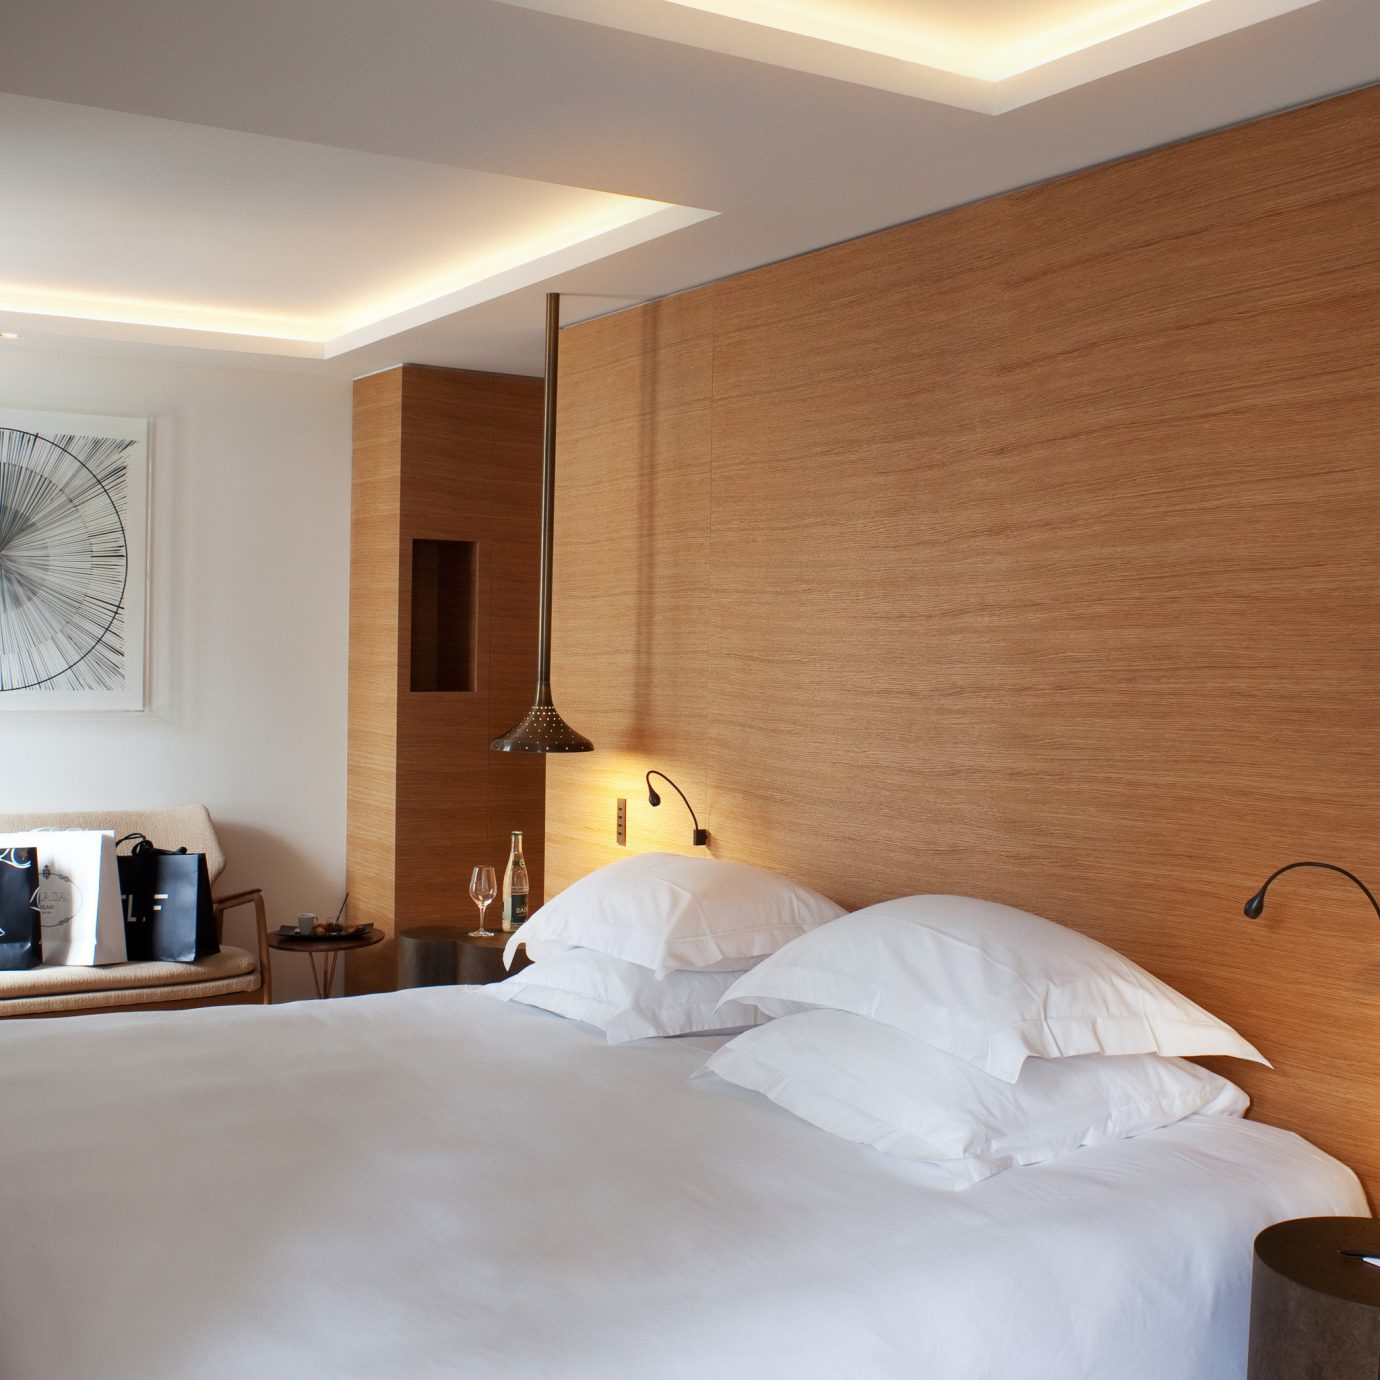 Bedroom City Hip Modern property Suite scene cottage